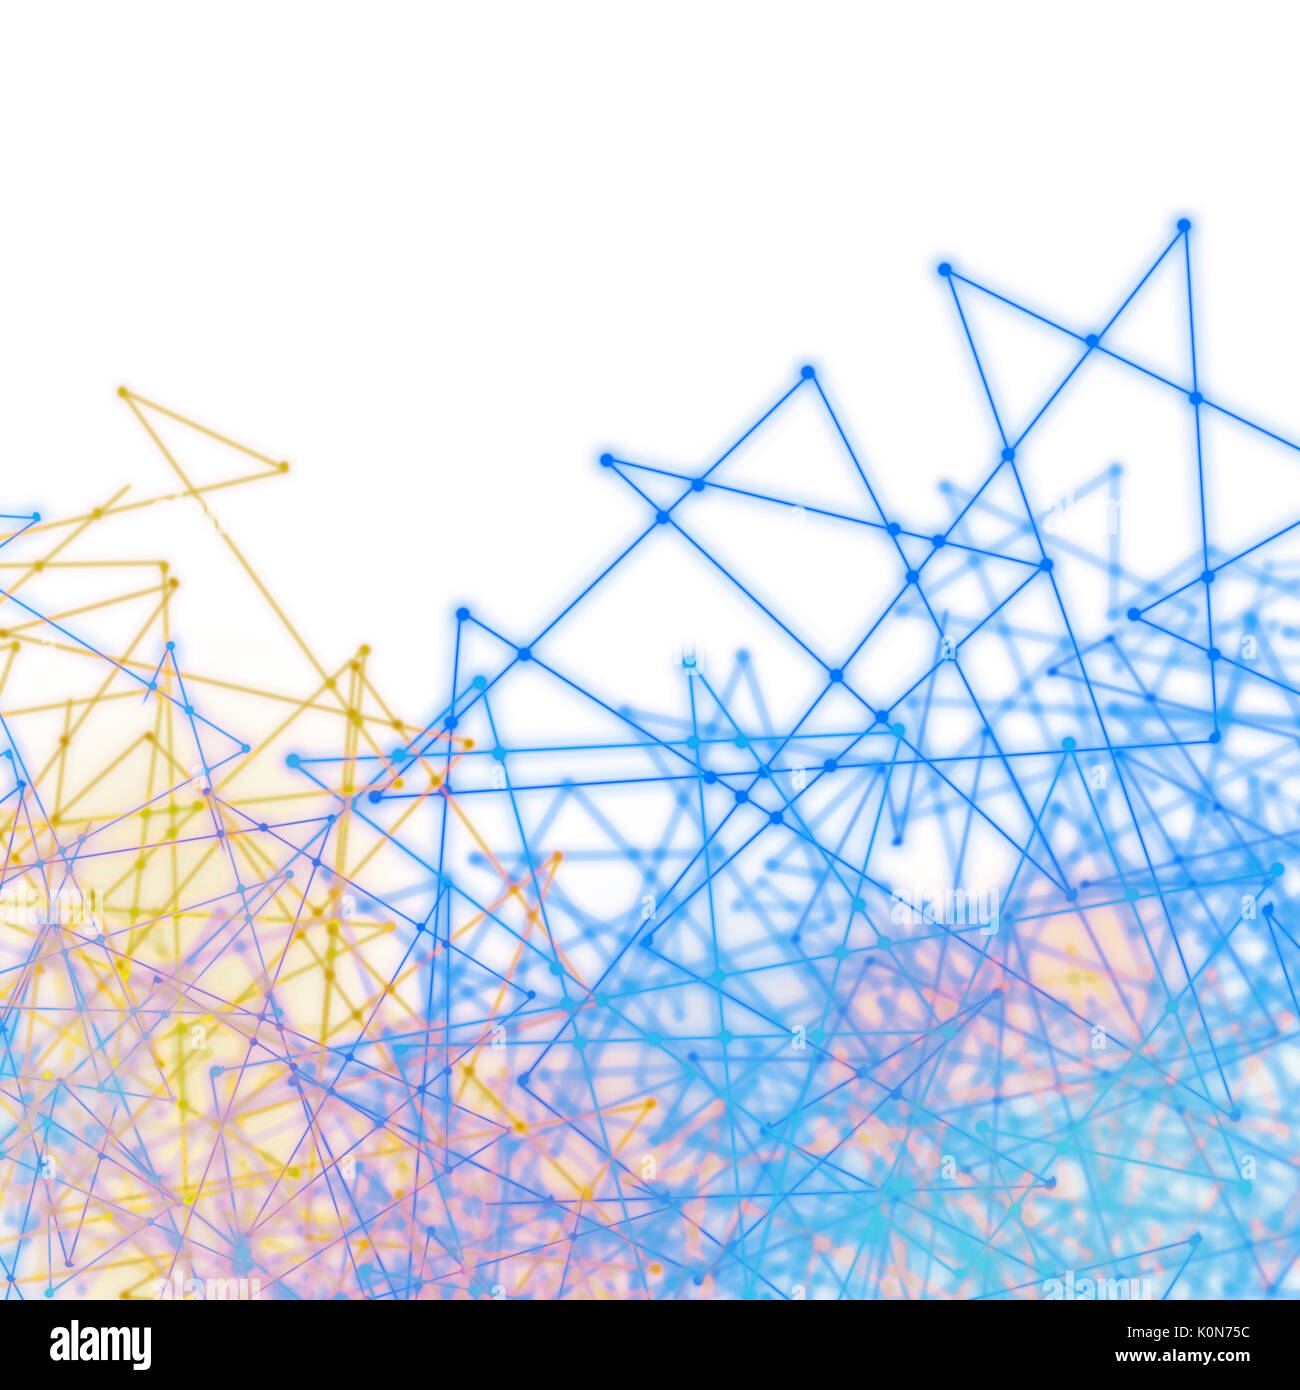 Plexus style effect tech background of futurtic mesh of wires and triangles Stock Photo